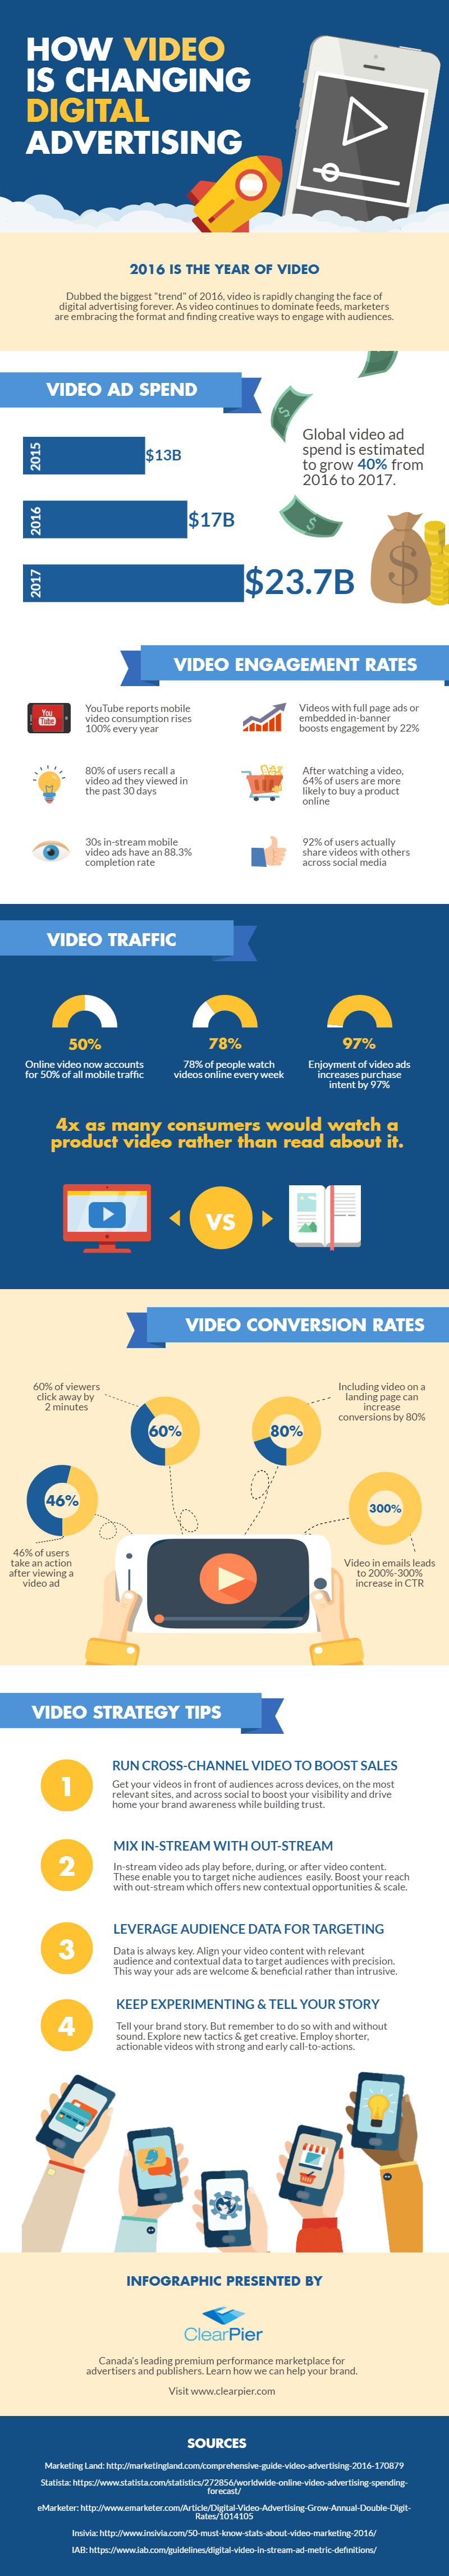 how-video-is-changing-digital-advertising-09-2016-clearpier